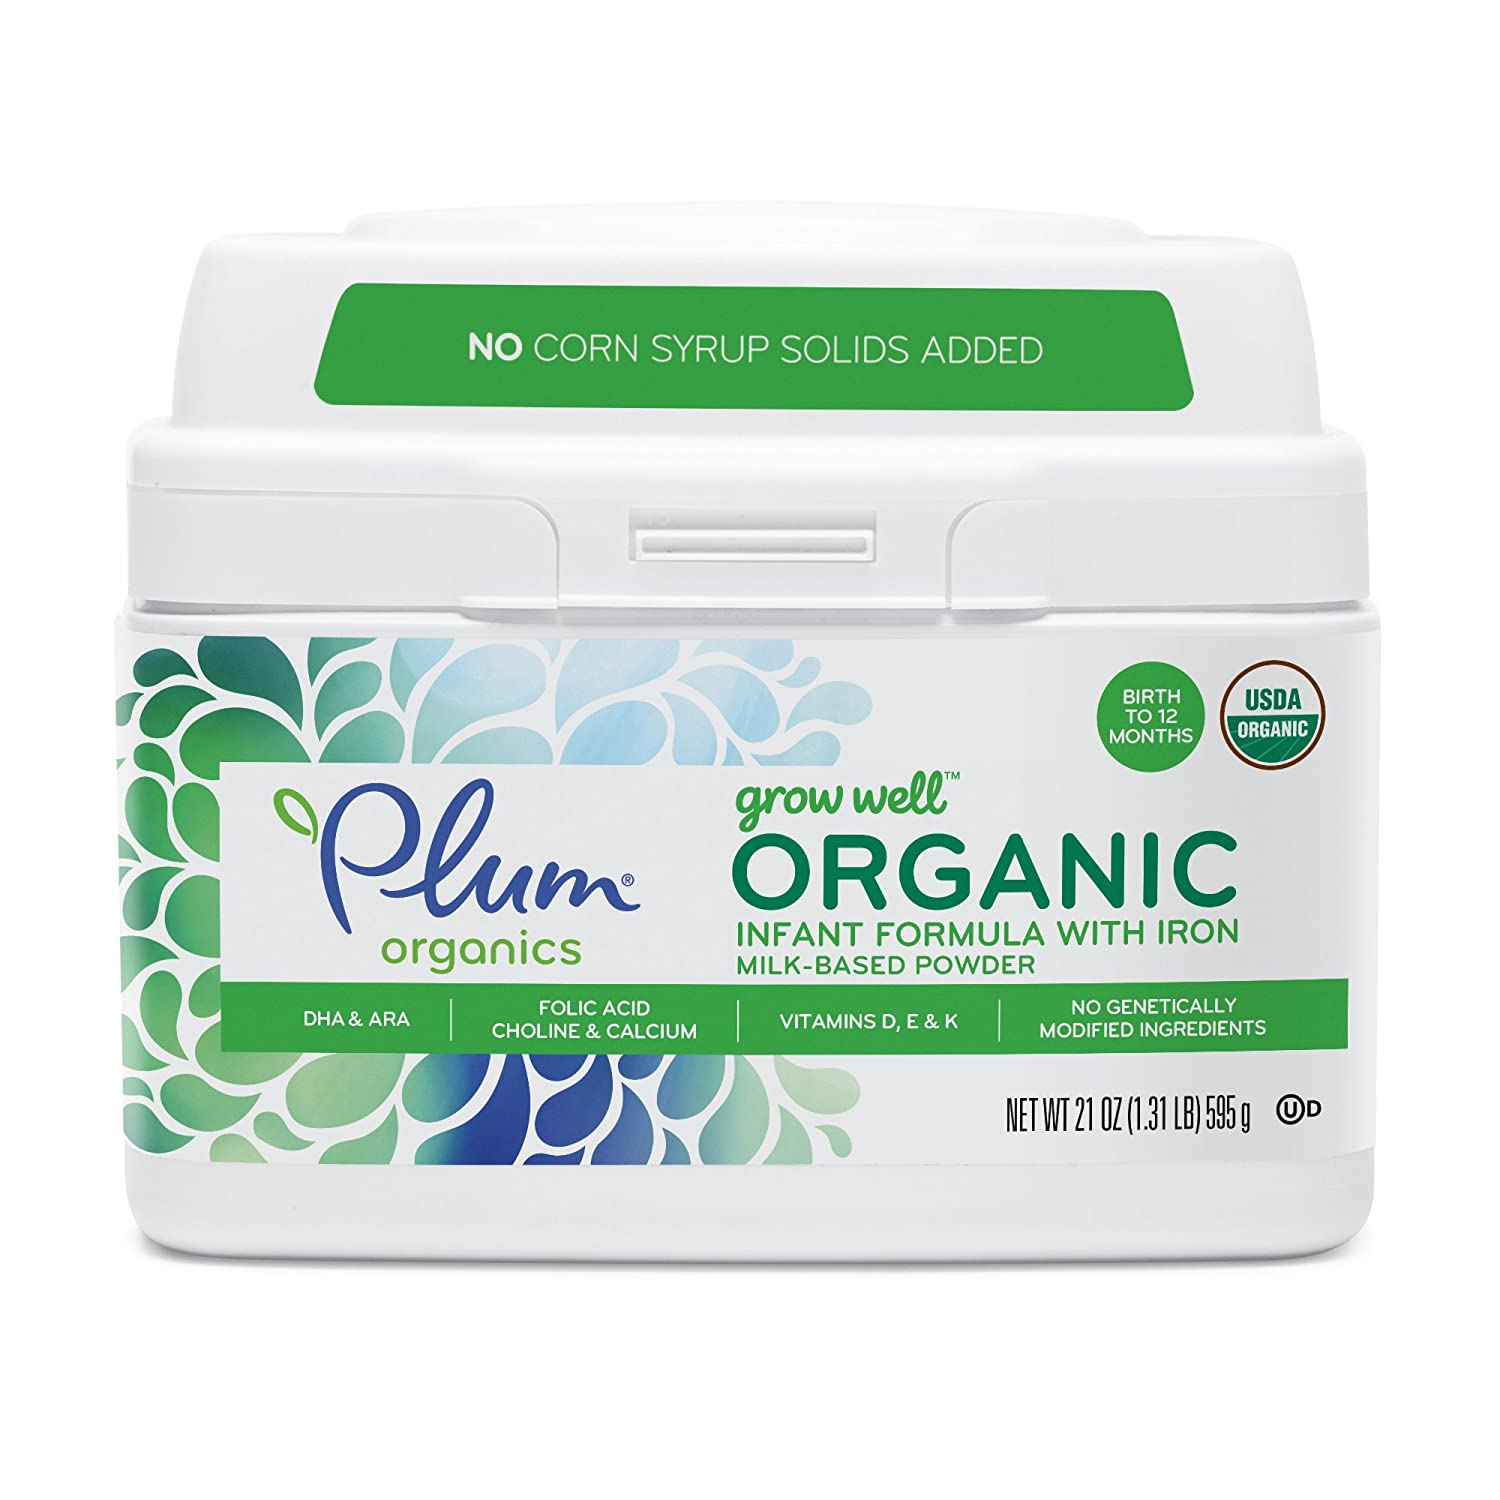 Plum Organics Grow Well Organic Formula